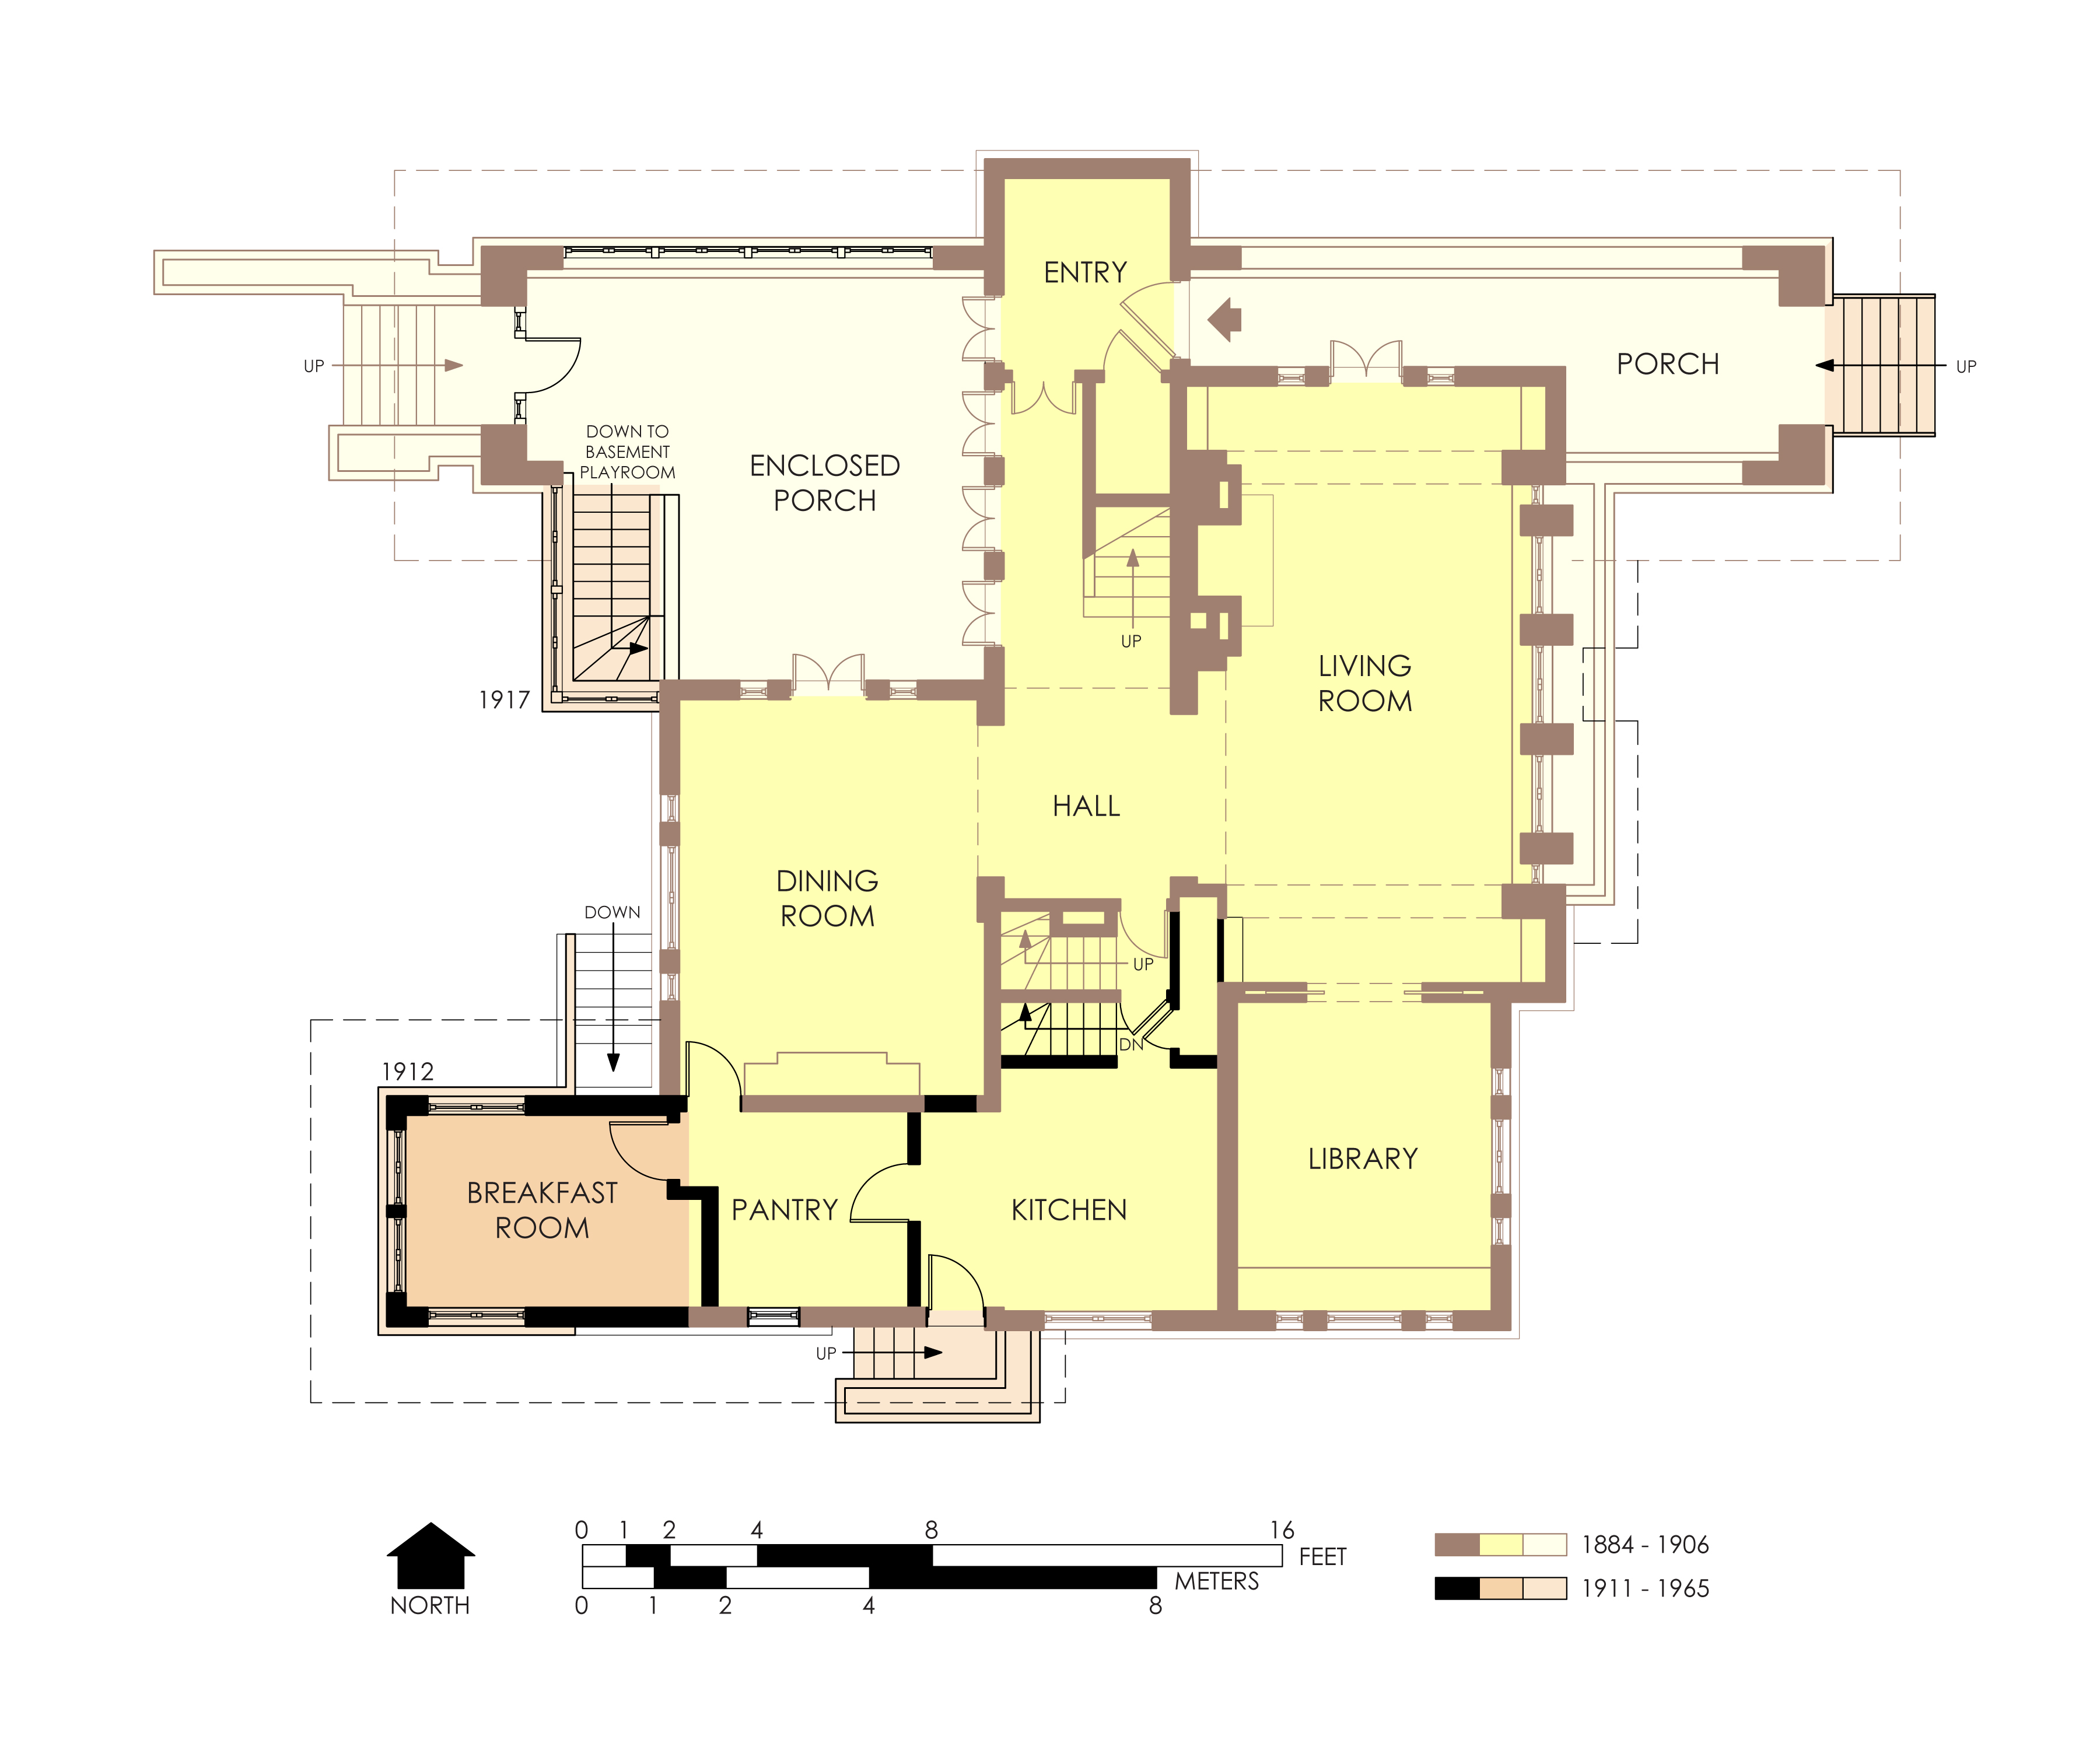 Free home plans frank lloyd wright turkel house floorplans Frank home plans